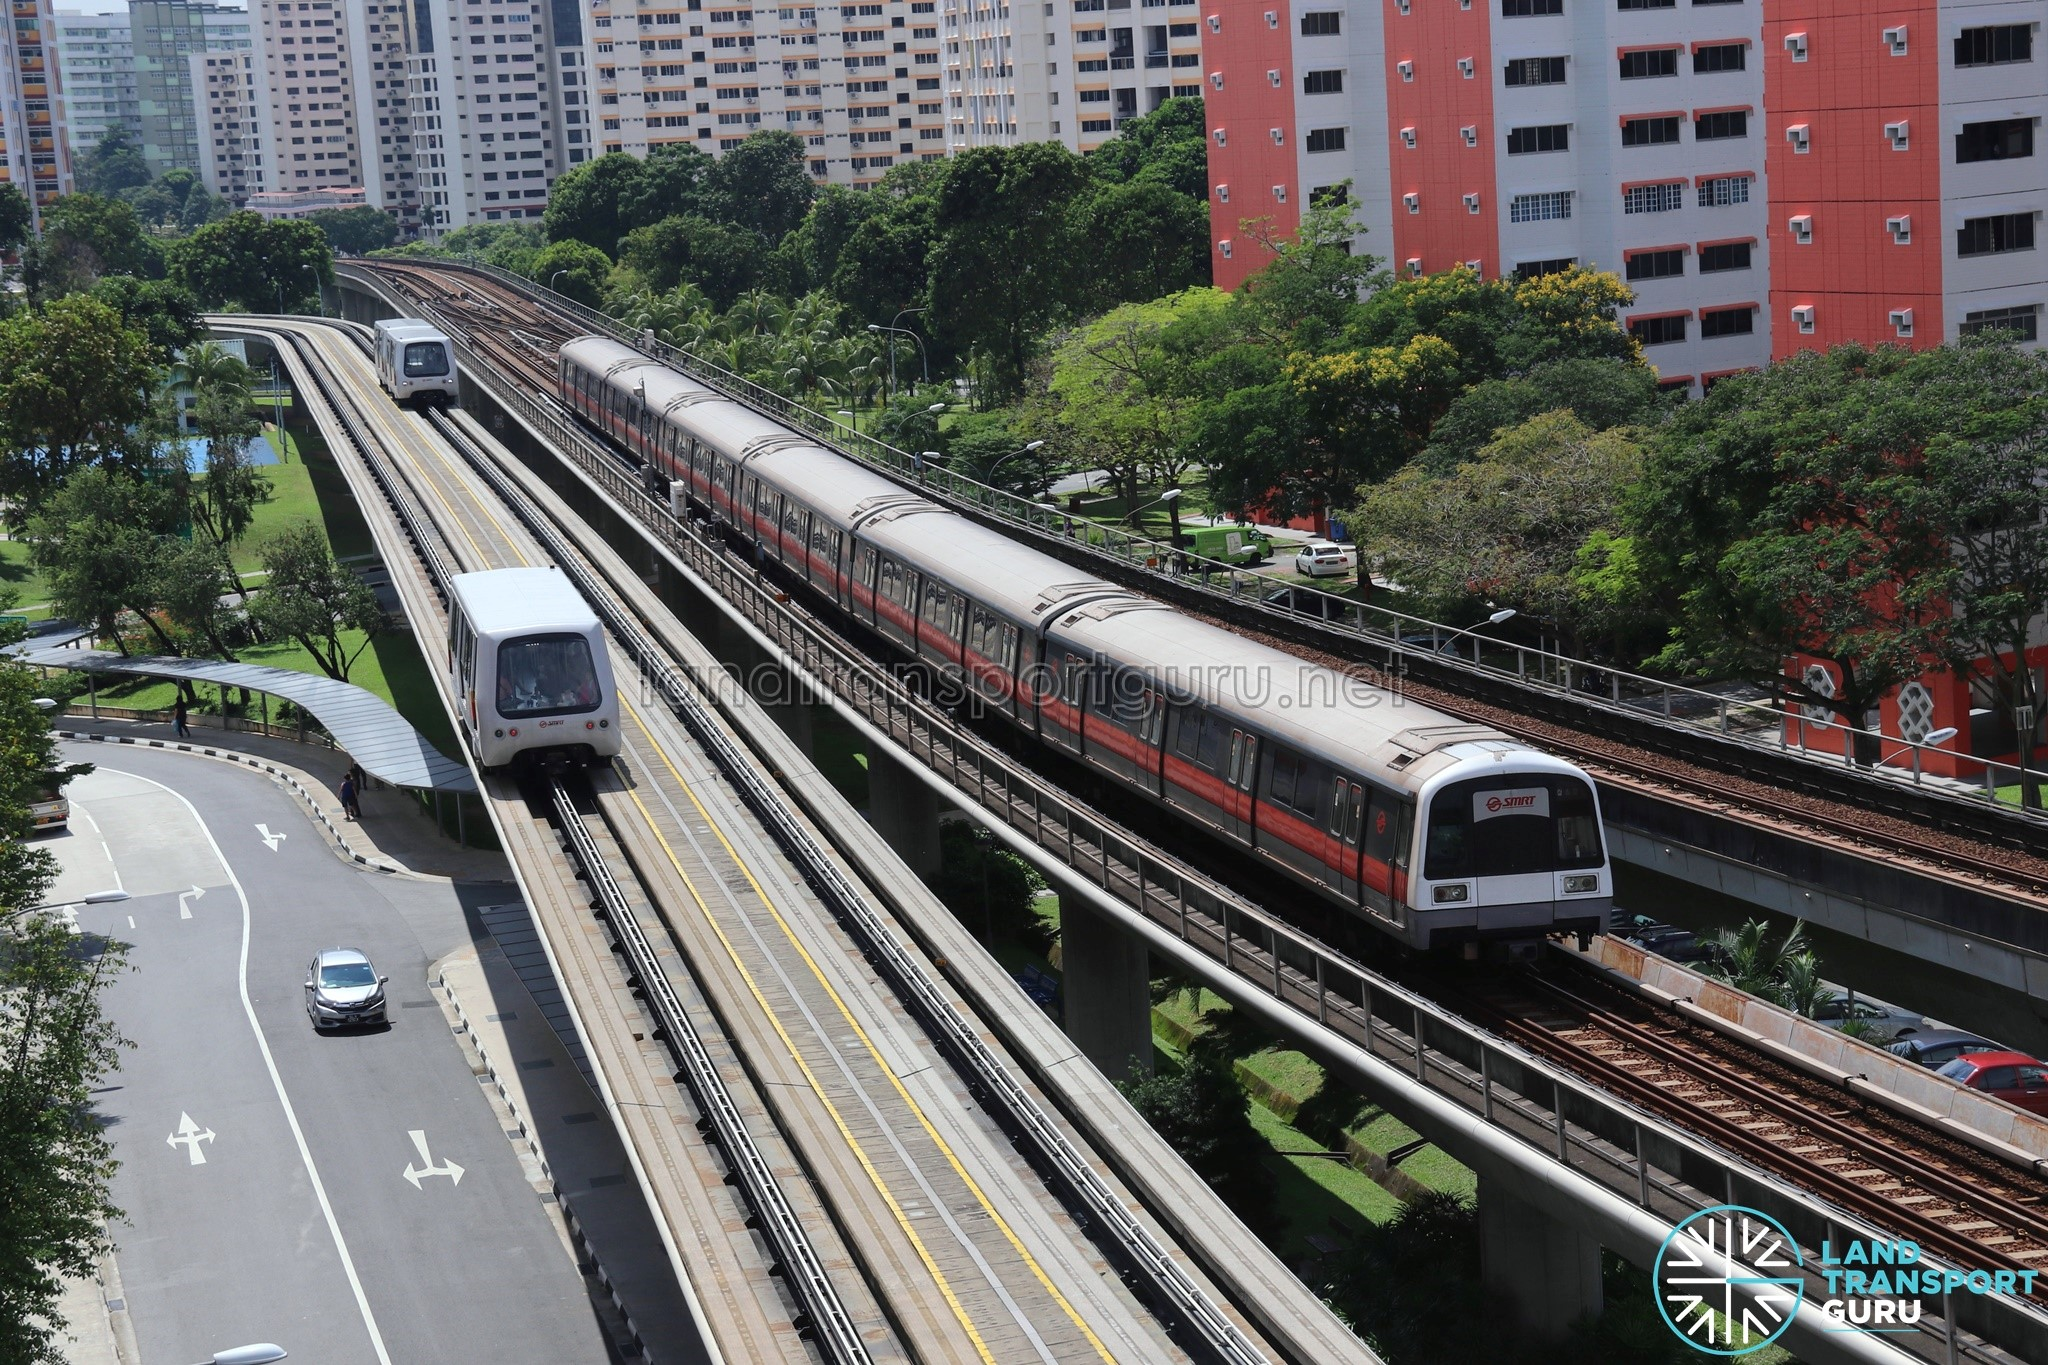 Singapore COVID-19 Circuit Breaker Measures – MRT & LRT Early Closures & Reduced Frequencies